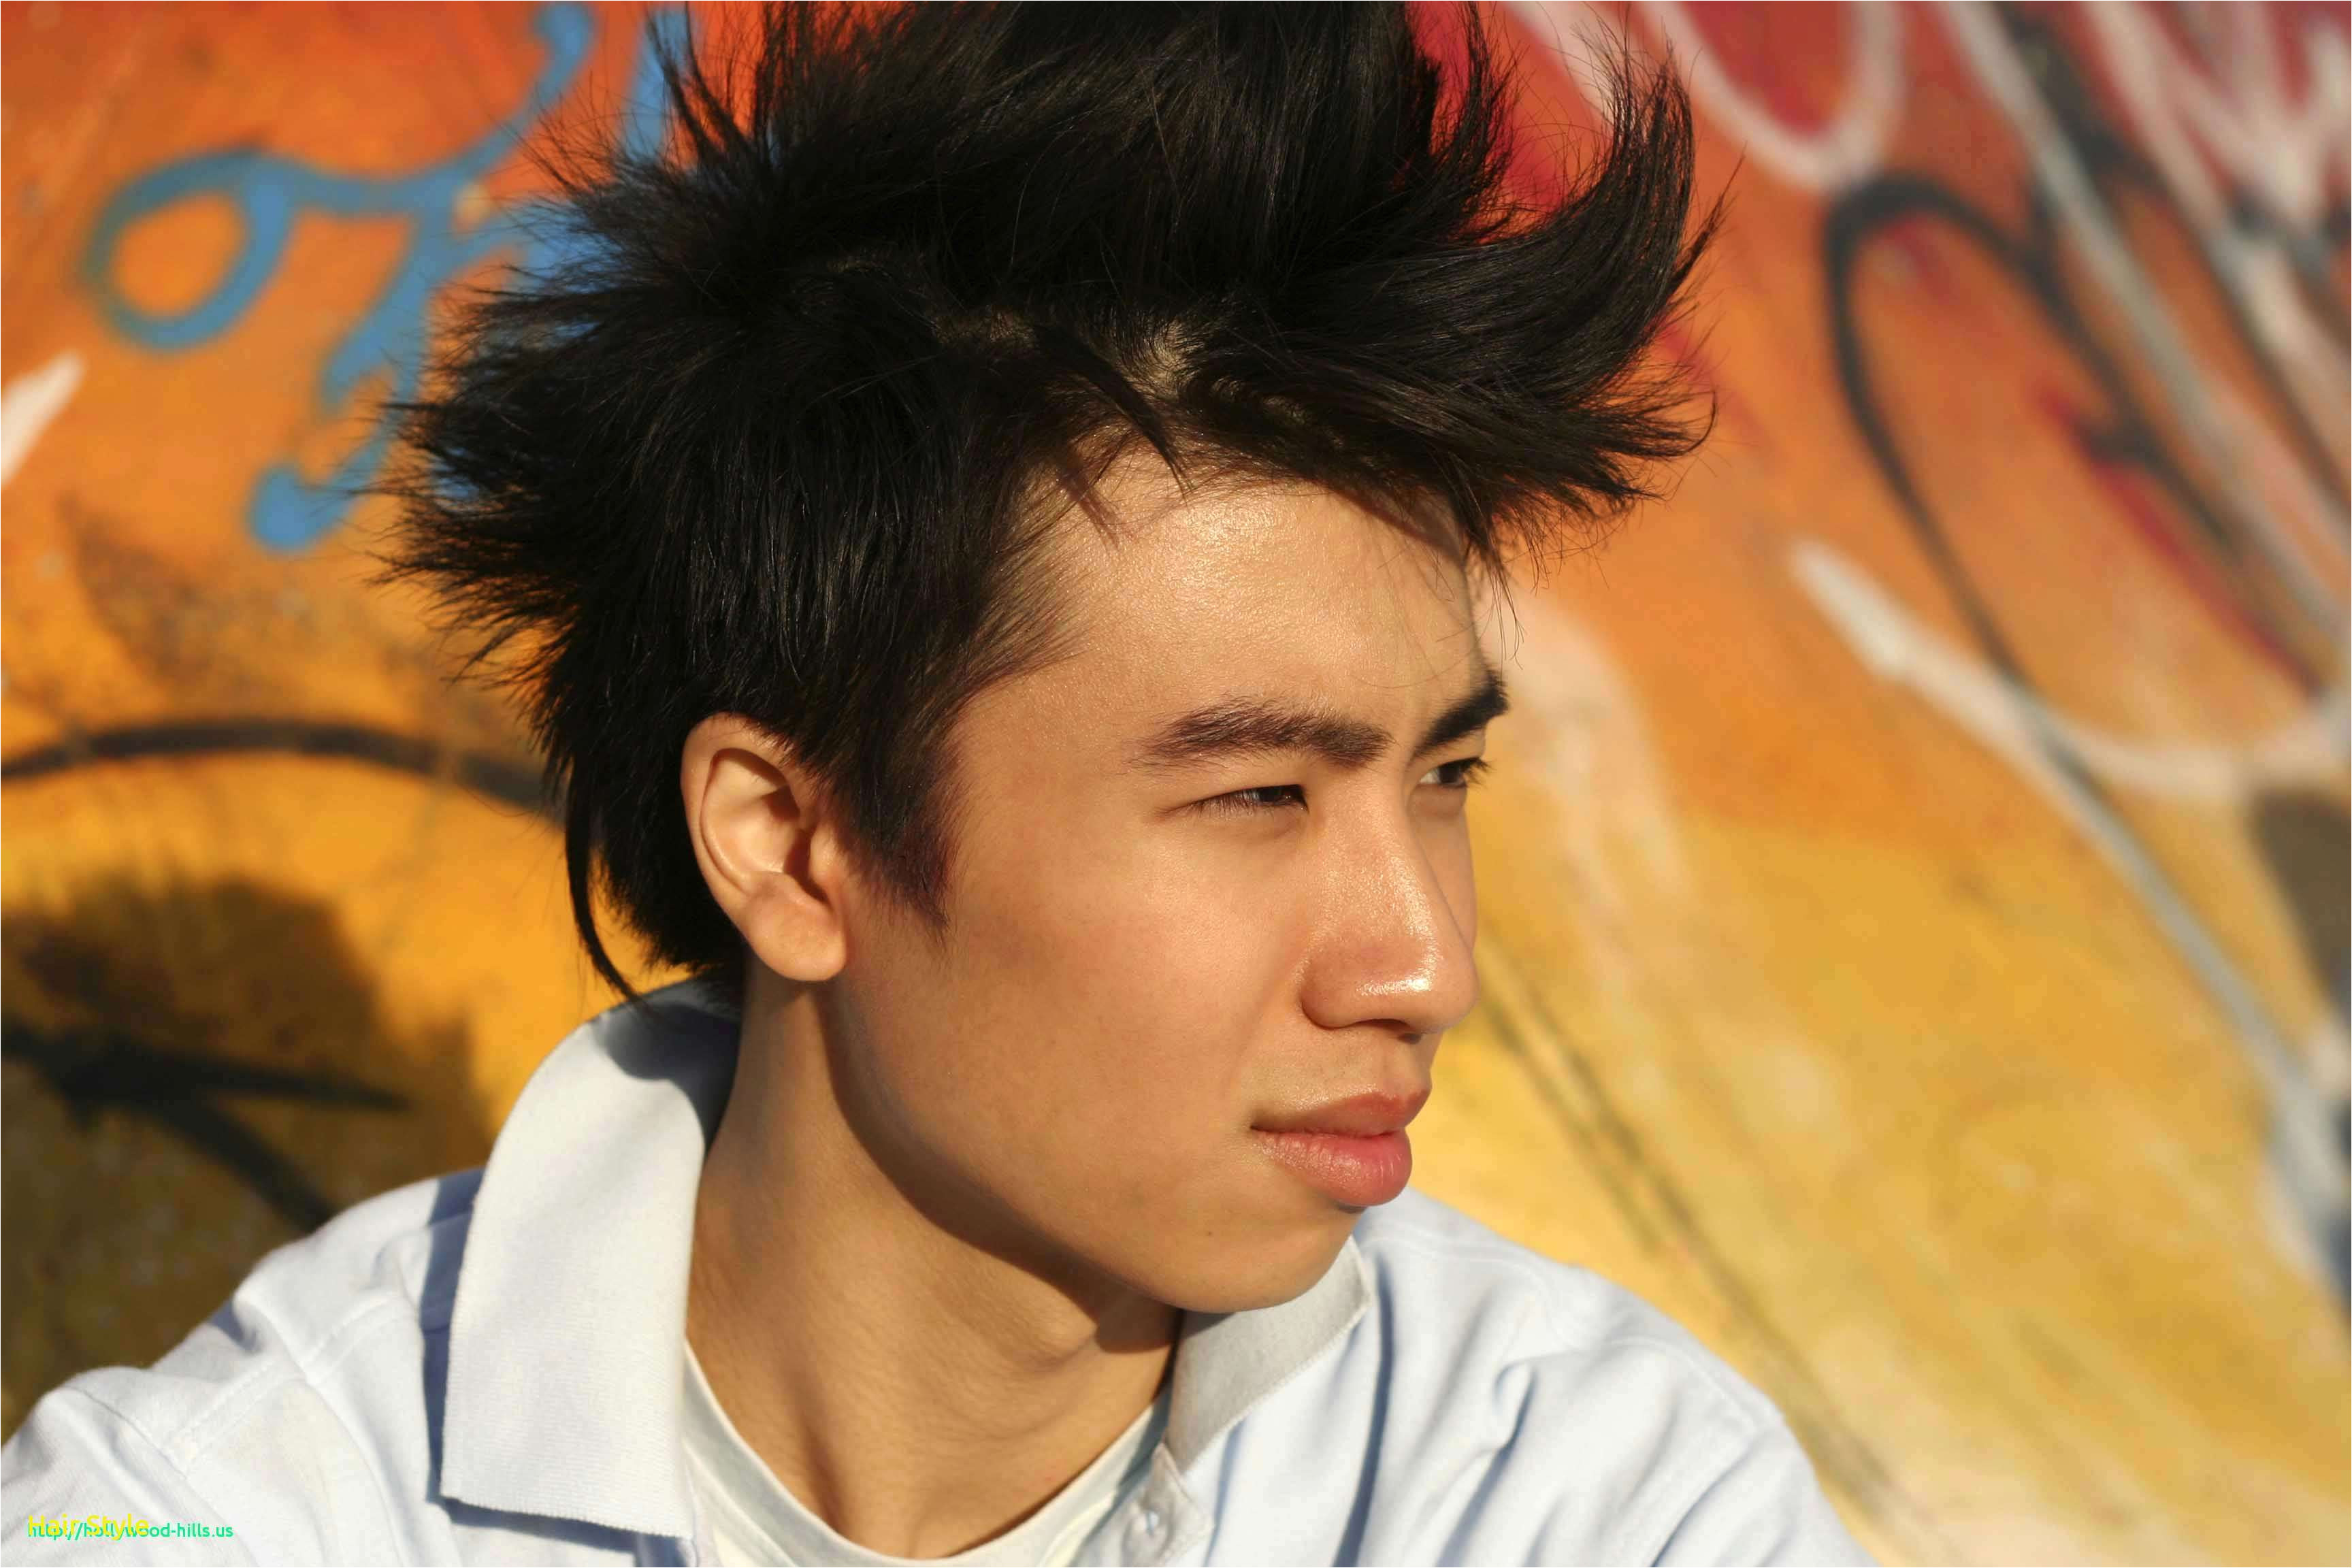 post gym hairstyles inspirational gym hairstyles male new hairstyles for men luxury haircuts 0d